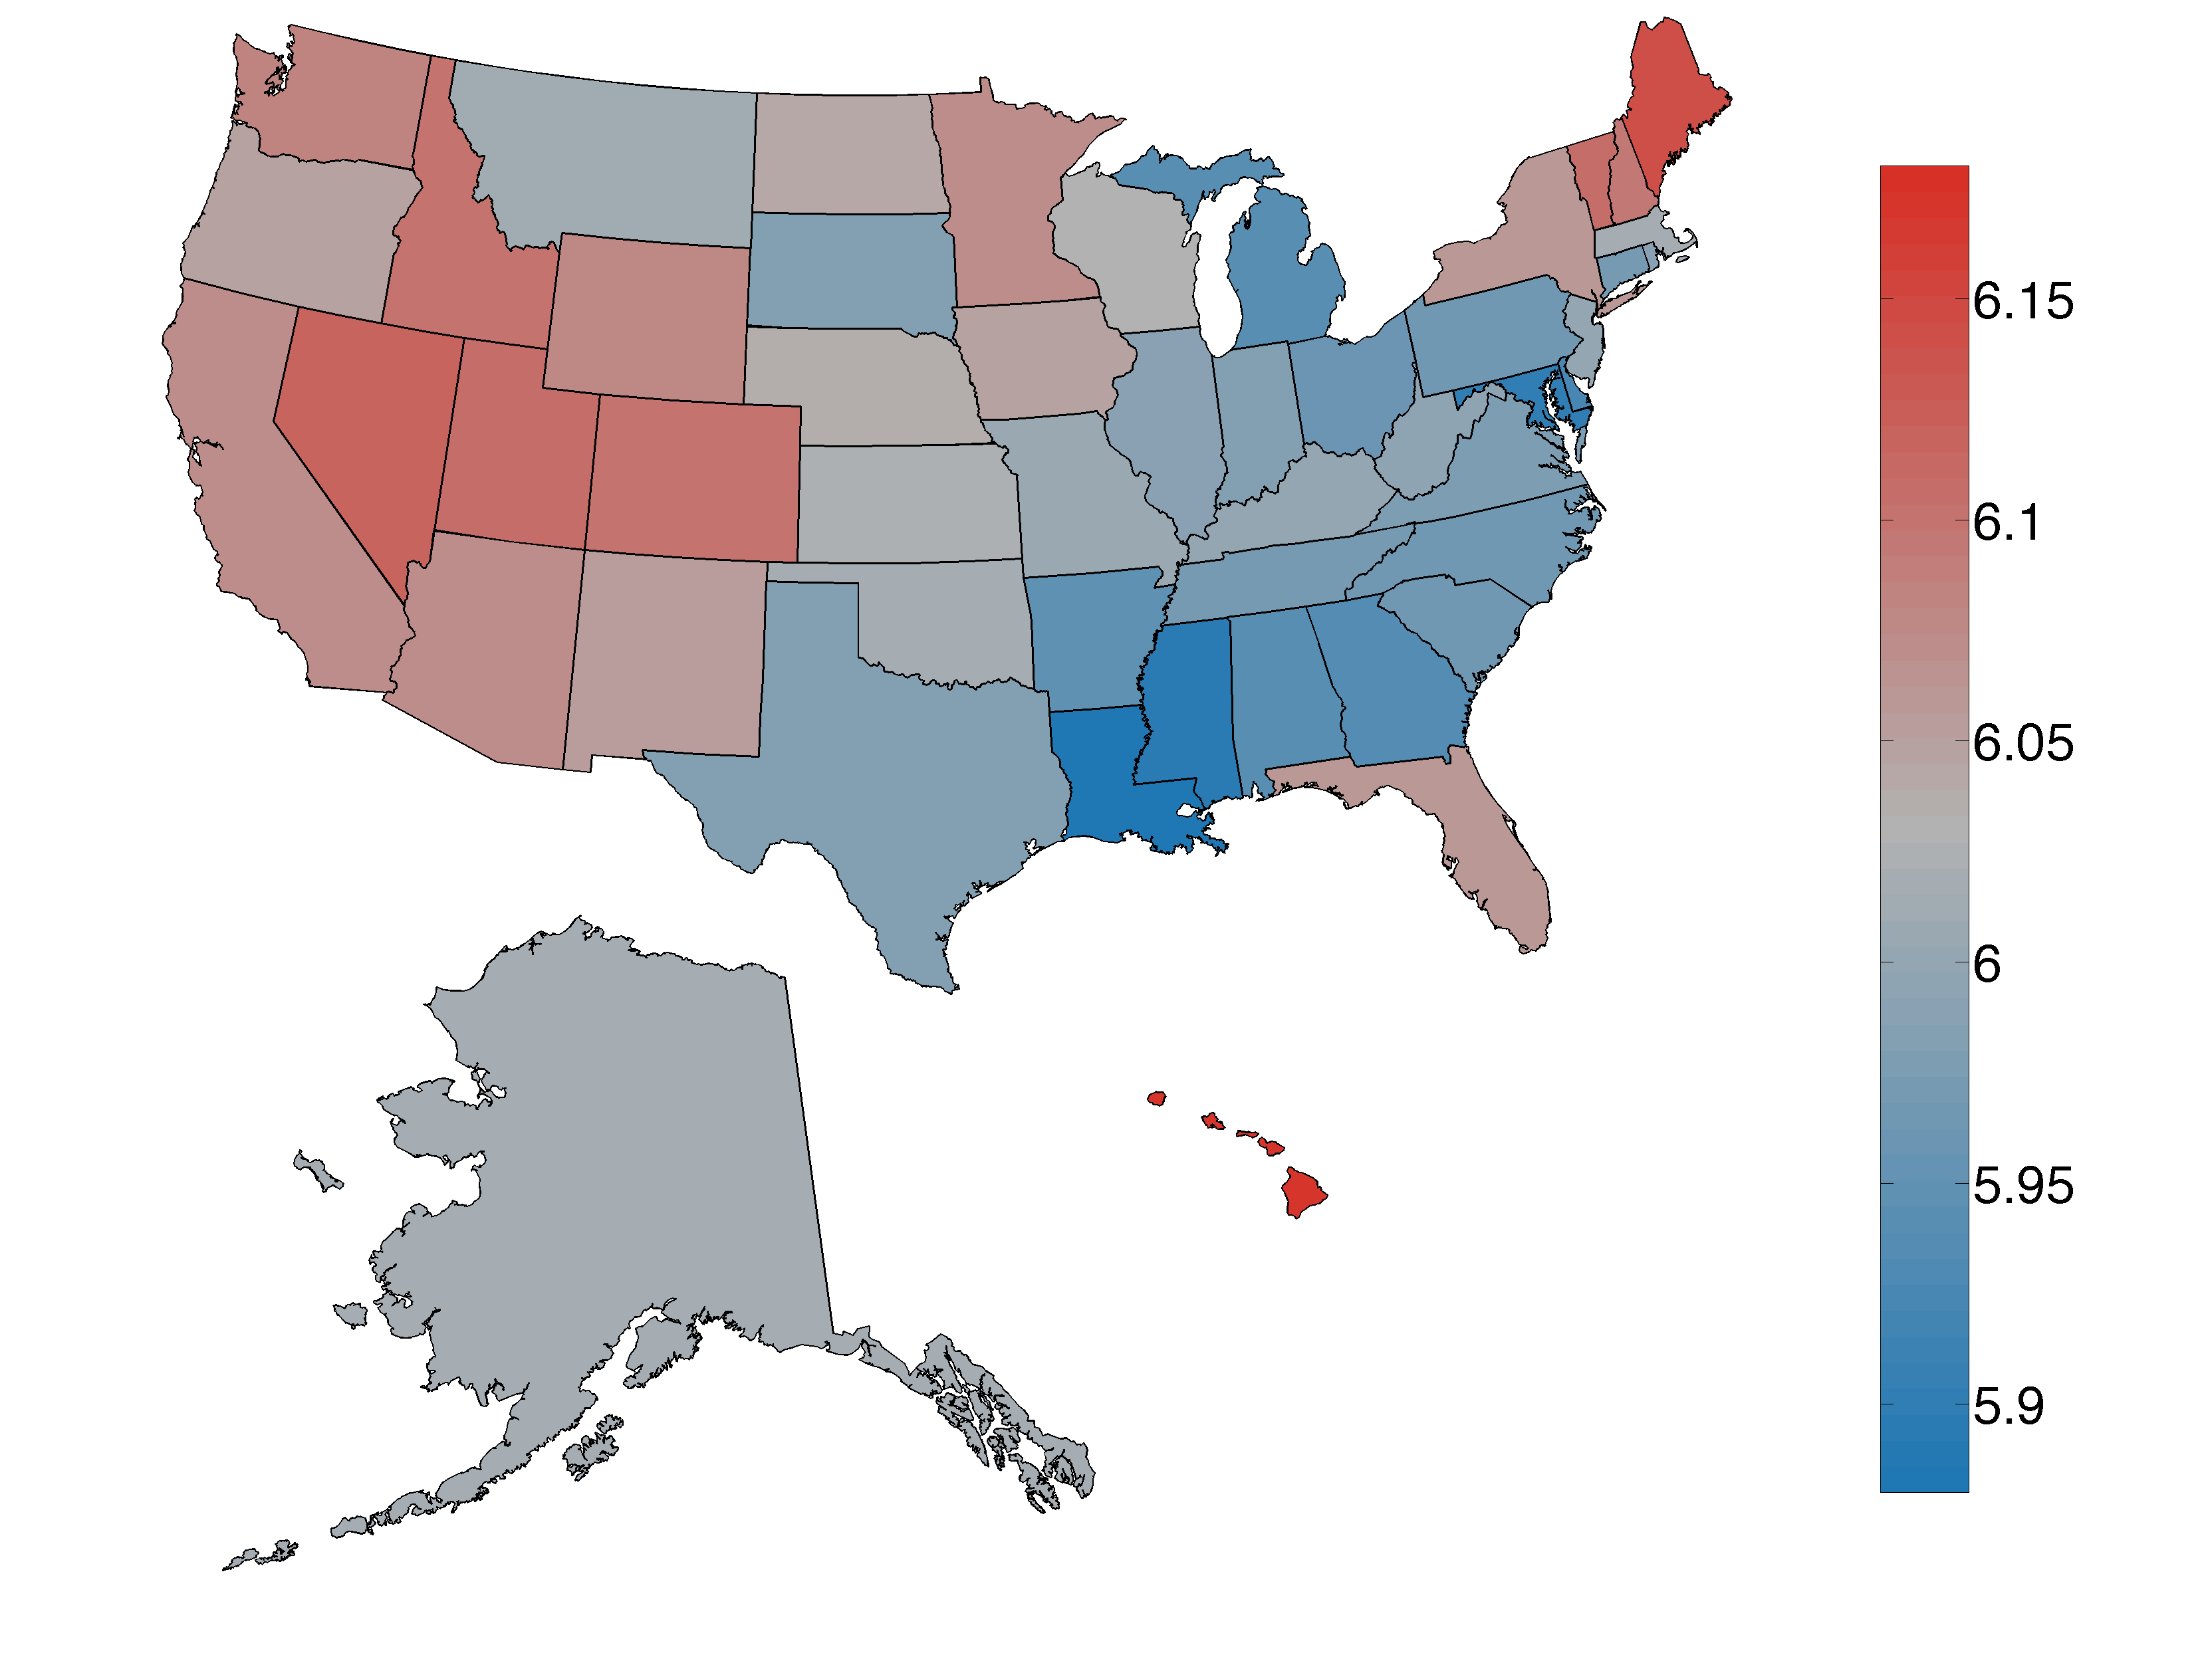 Where Is The Happiest City In The USA - Louisiana on the map of usa